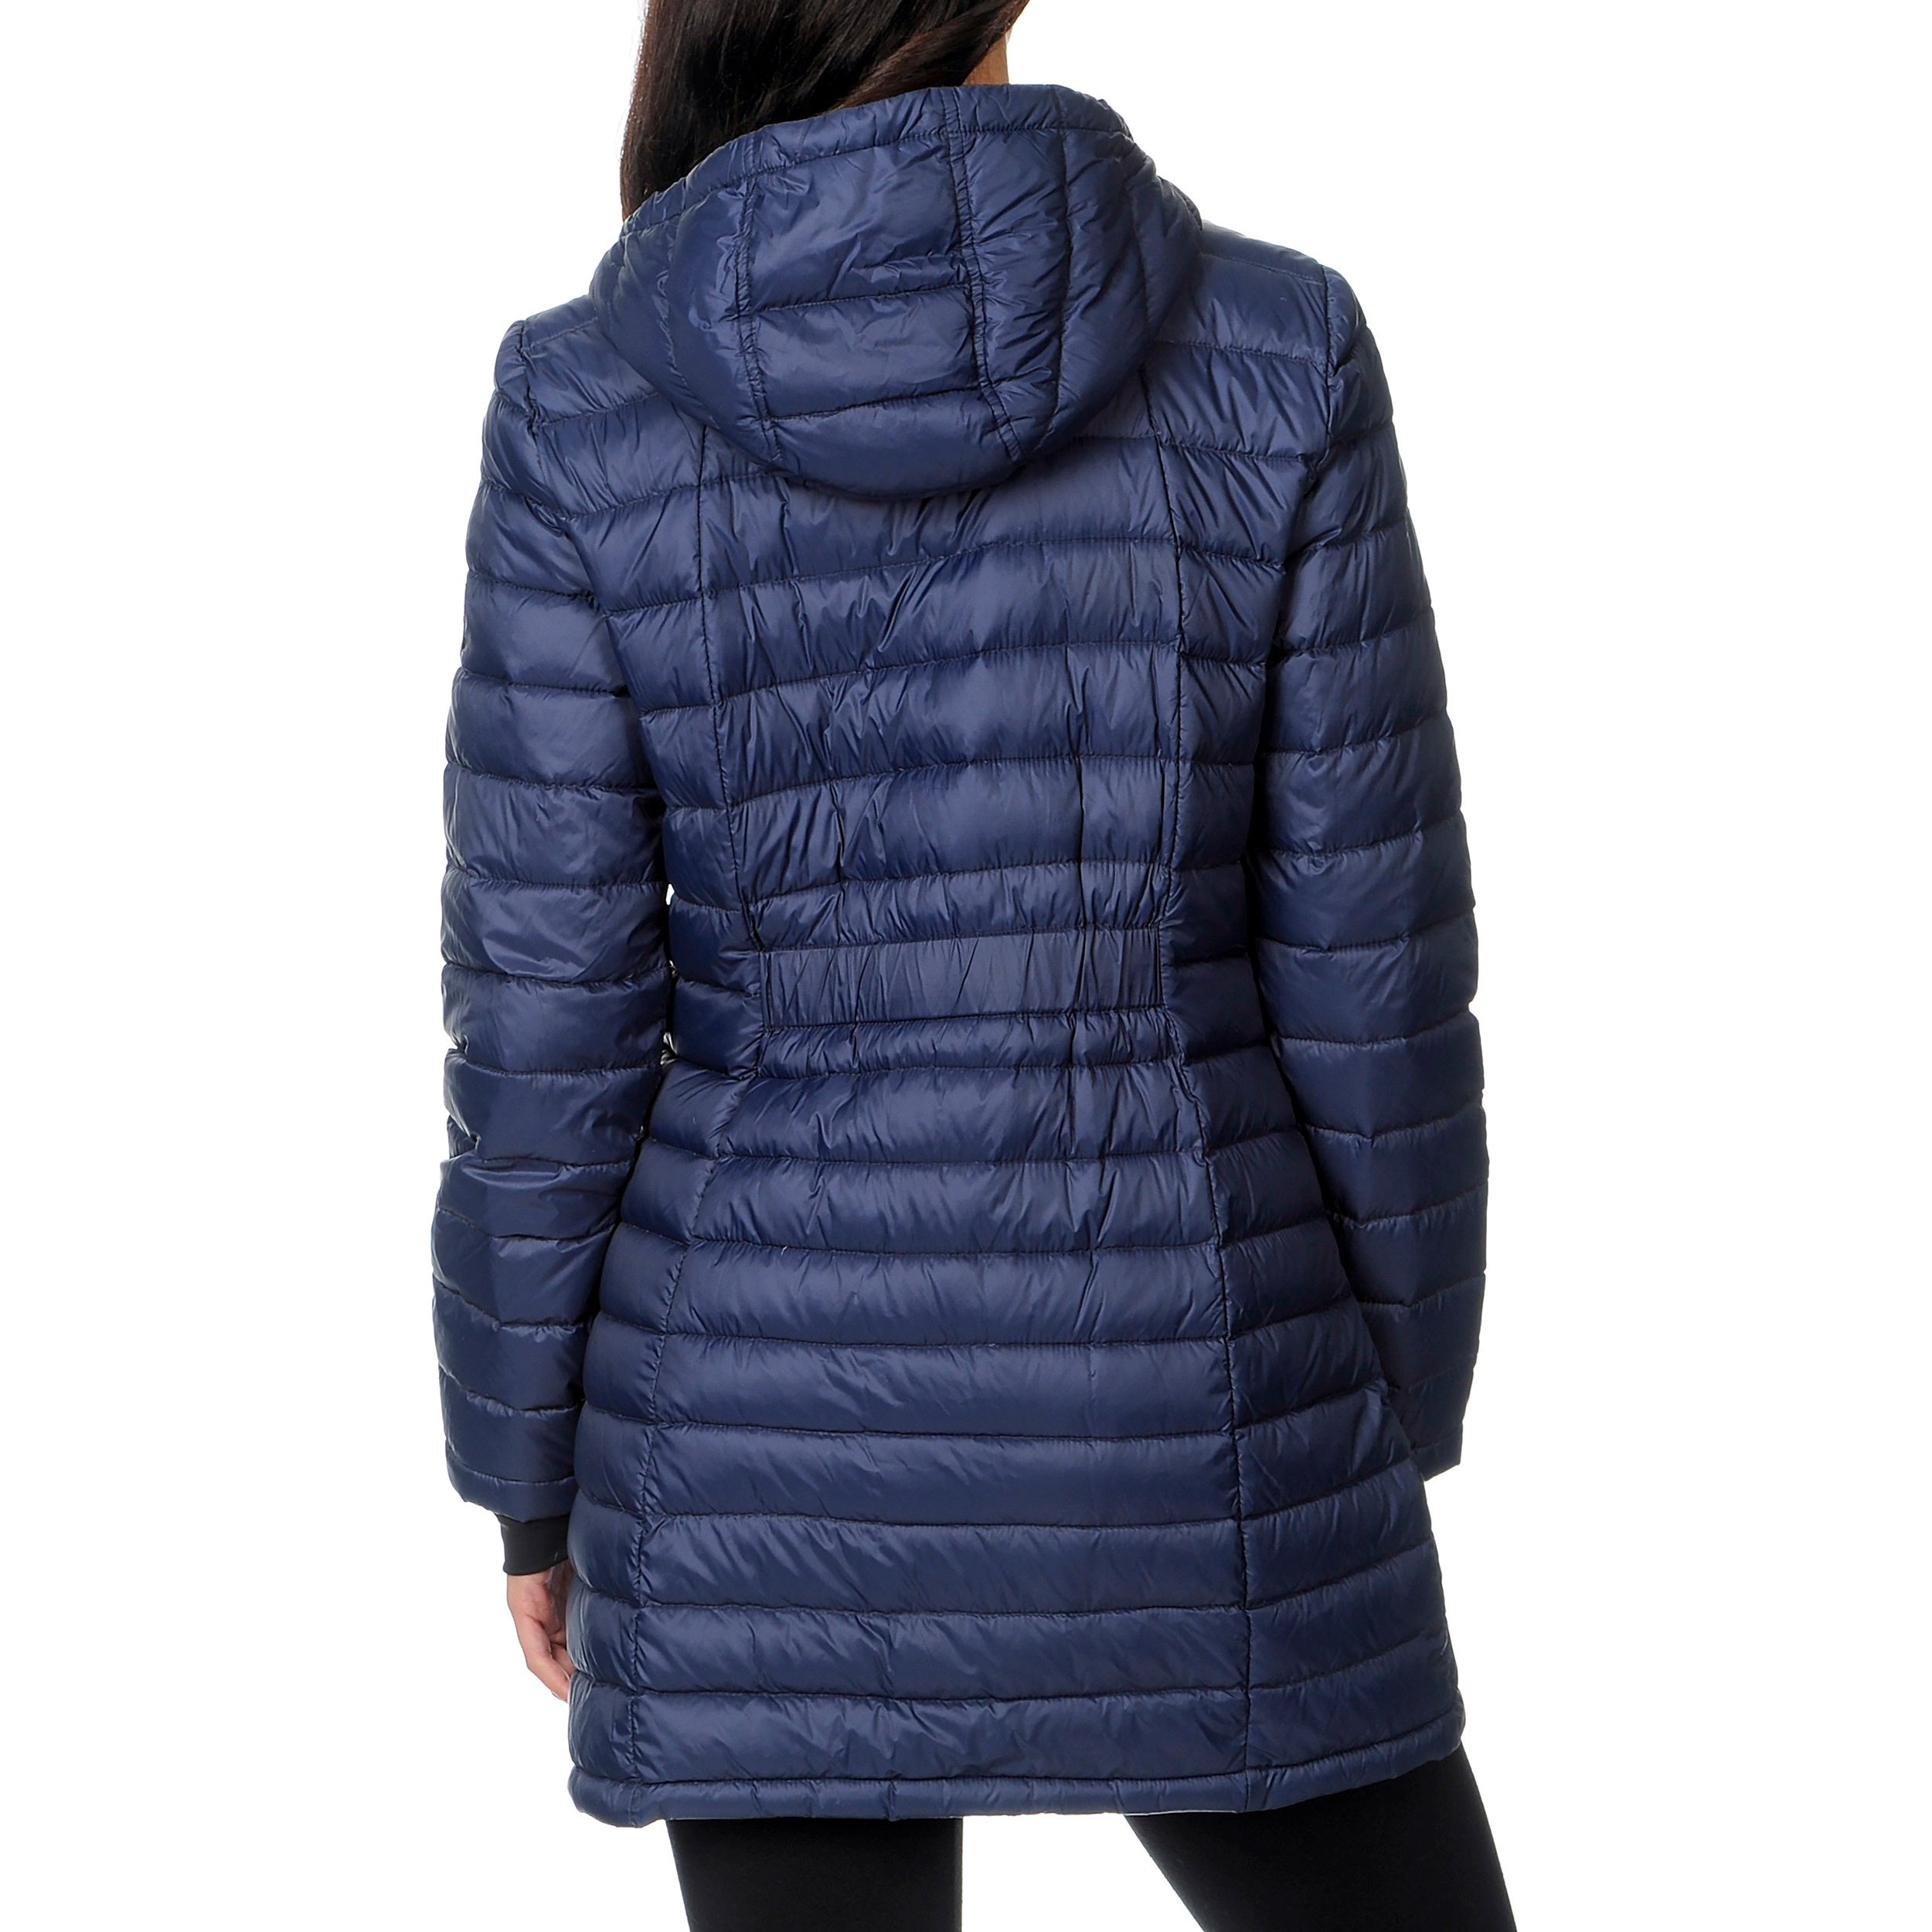 0ebf27bbd2a Shop Halifax Traders Women's Marine Navy Hooded Packable Down Coat - Free  Shipping Today - Overstock - 9423876